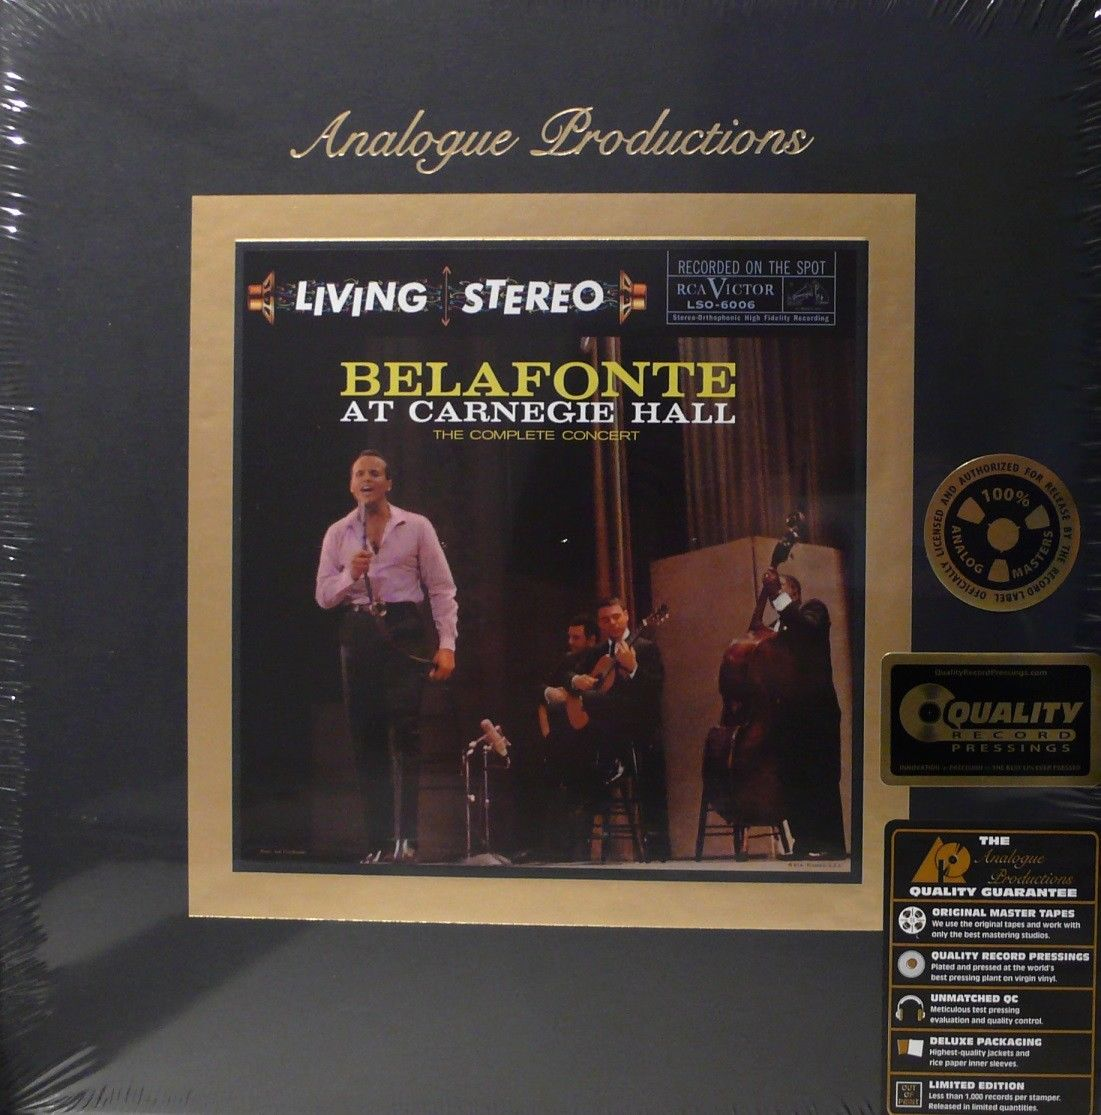 HARRY BELAFONTE - LIVING STEREO - AAPF 6006-45 - LIVE AT CARNEGIE HALL 5LP BOX